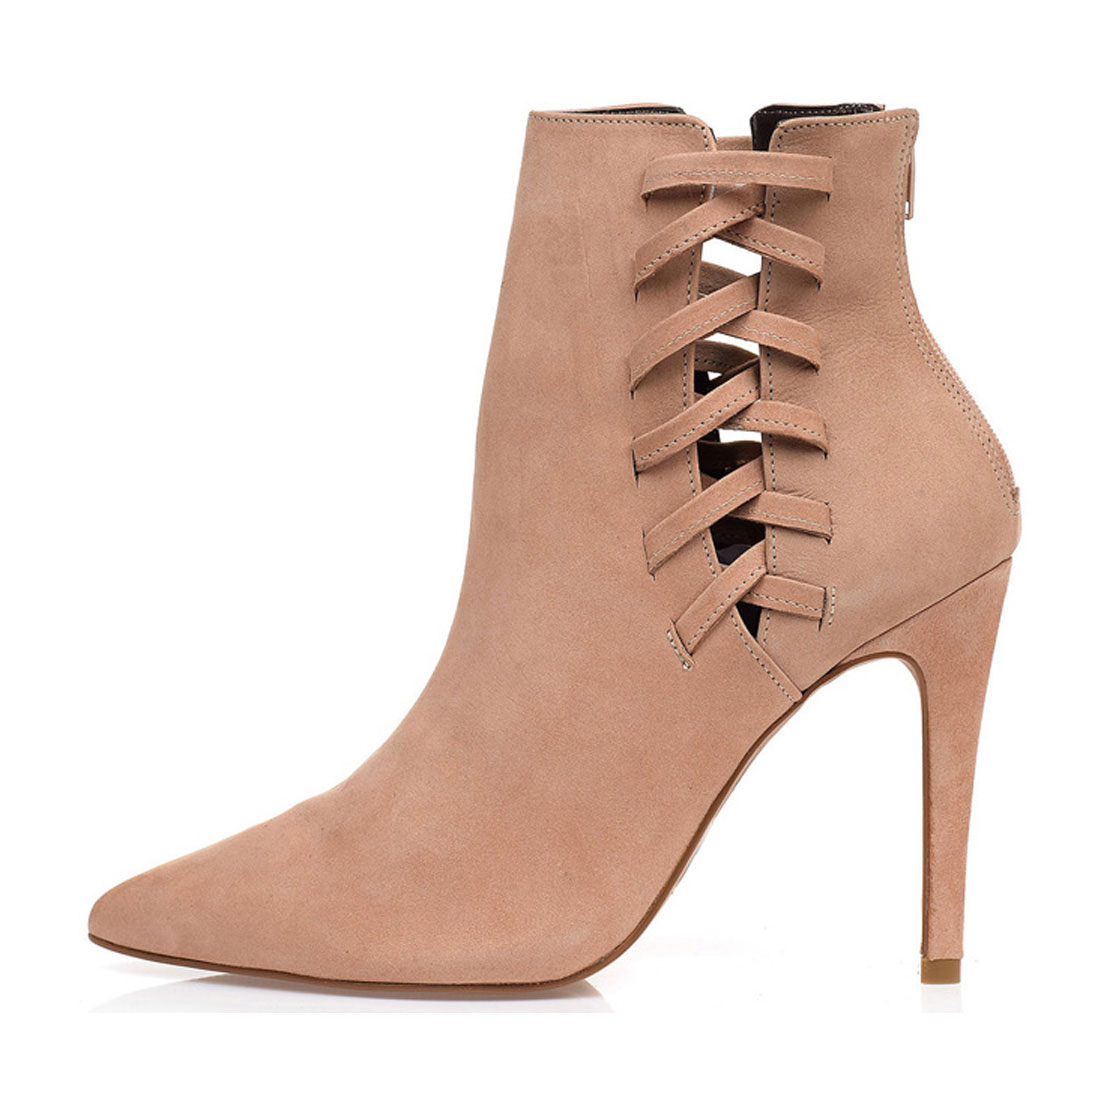 Really suede leather pointed winter high heel dress ladies ankle boot YH1215